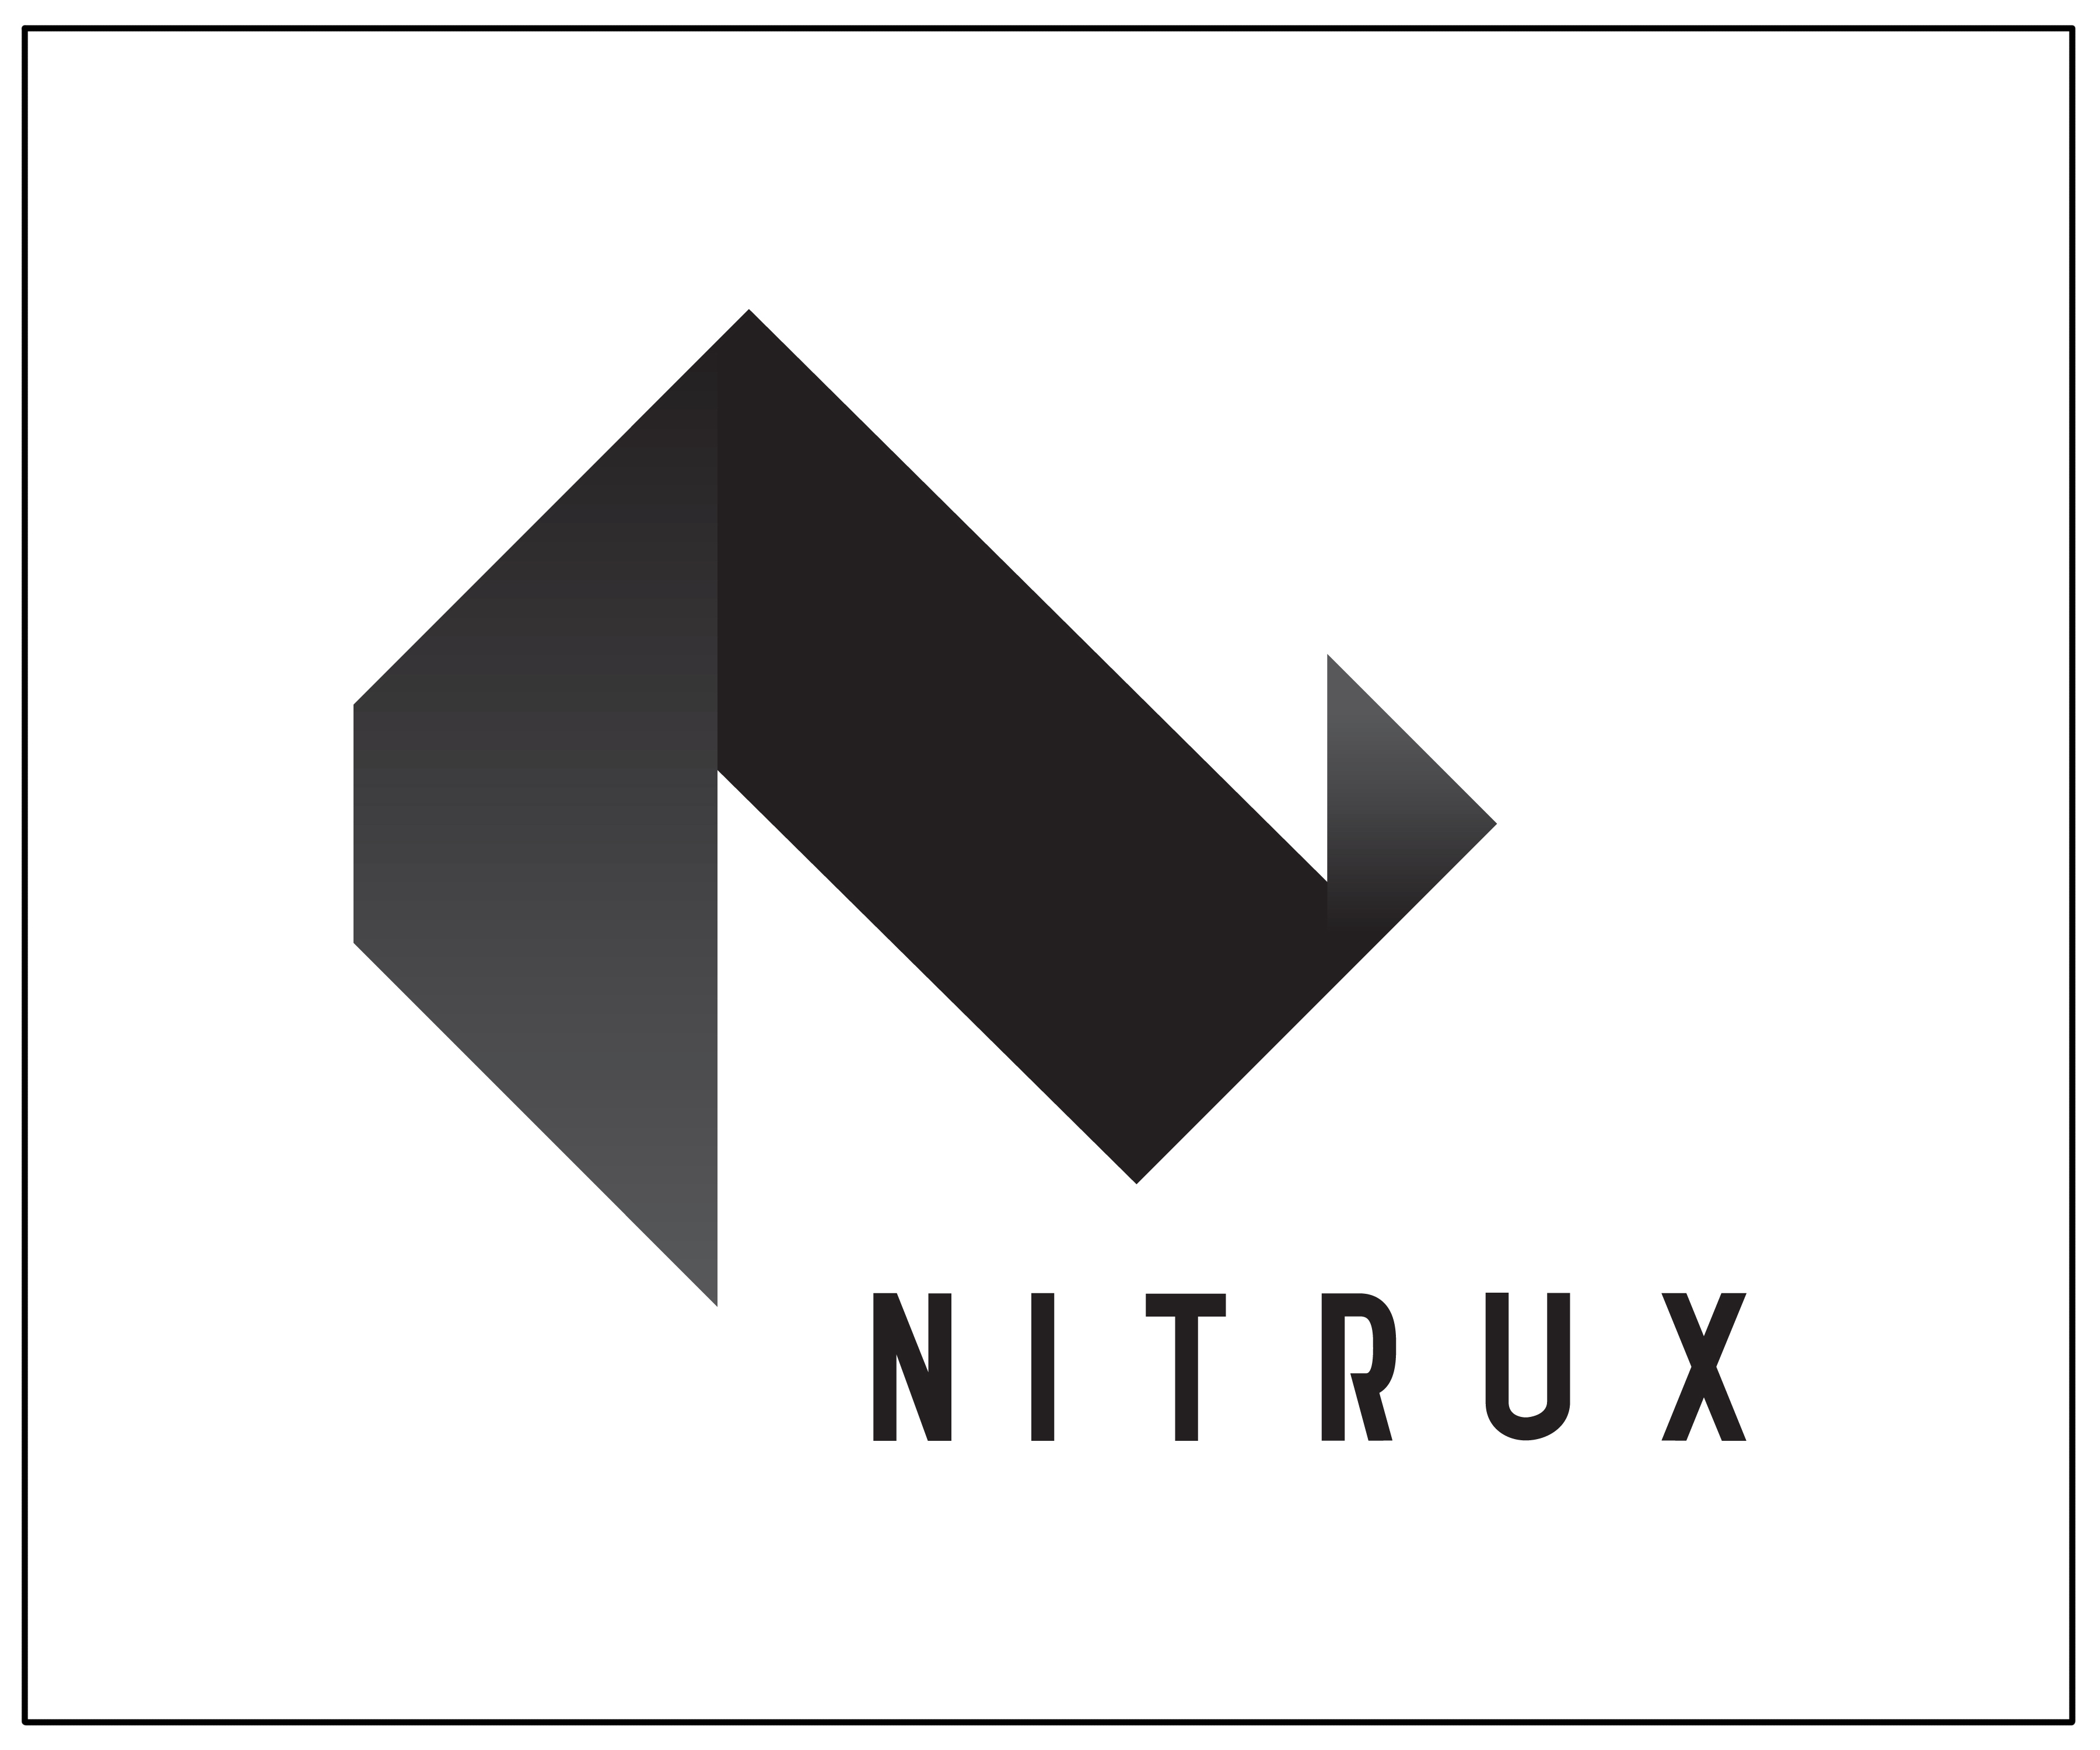 Hh Logo Design Logo- nitrux - corporate